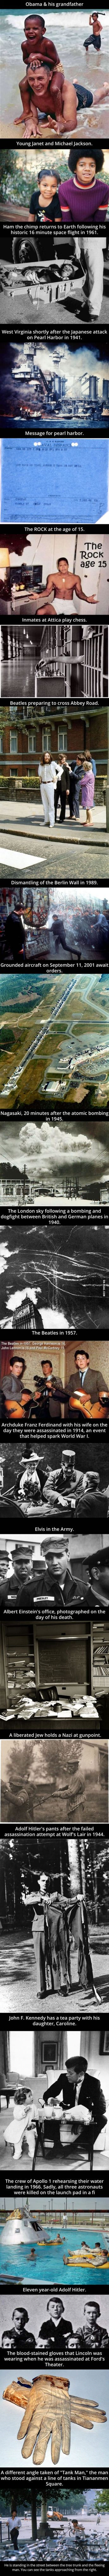 Some Really Cool Historical Photos